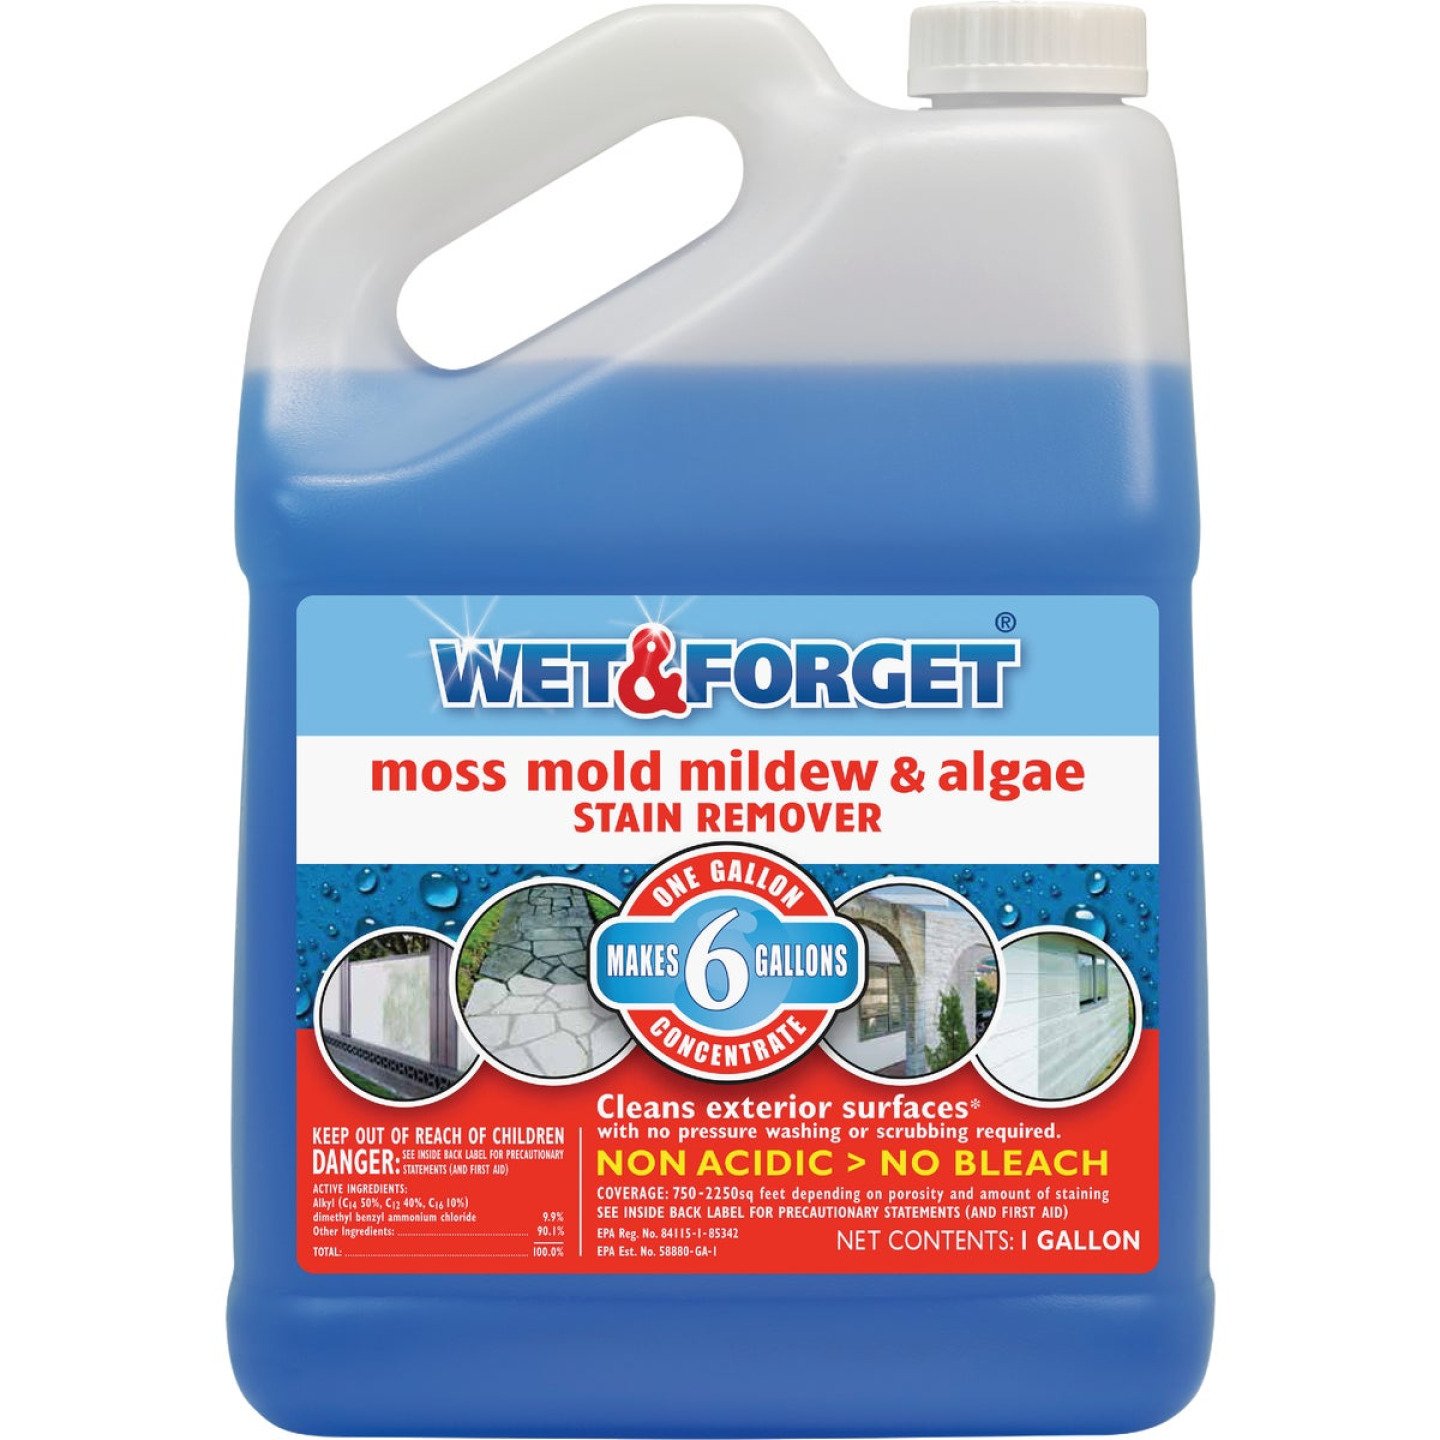 Wet & Forget 1 Gal. Liquid Concentrate Moss, Mold, Mildew, & Algae Stain Remover Image 1